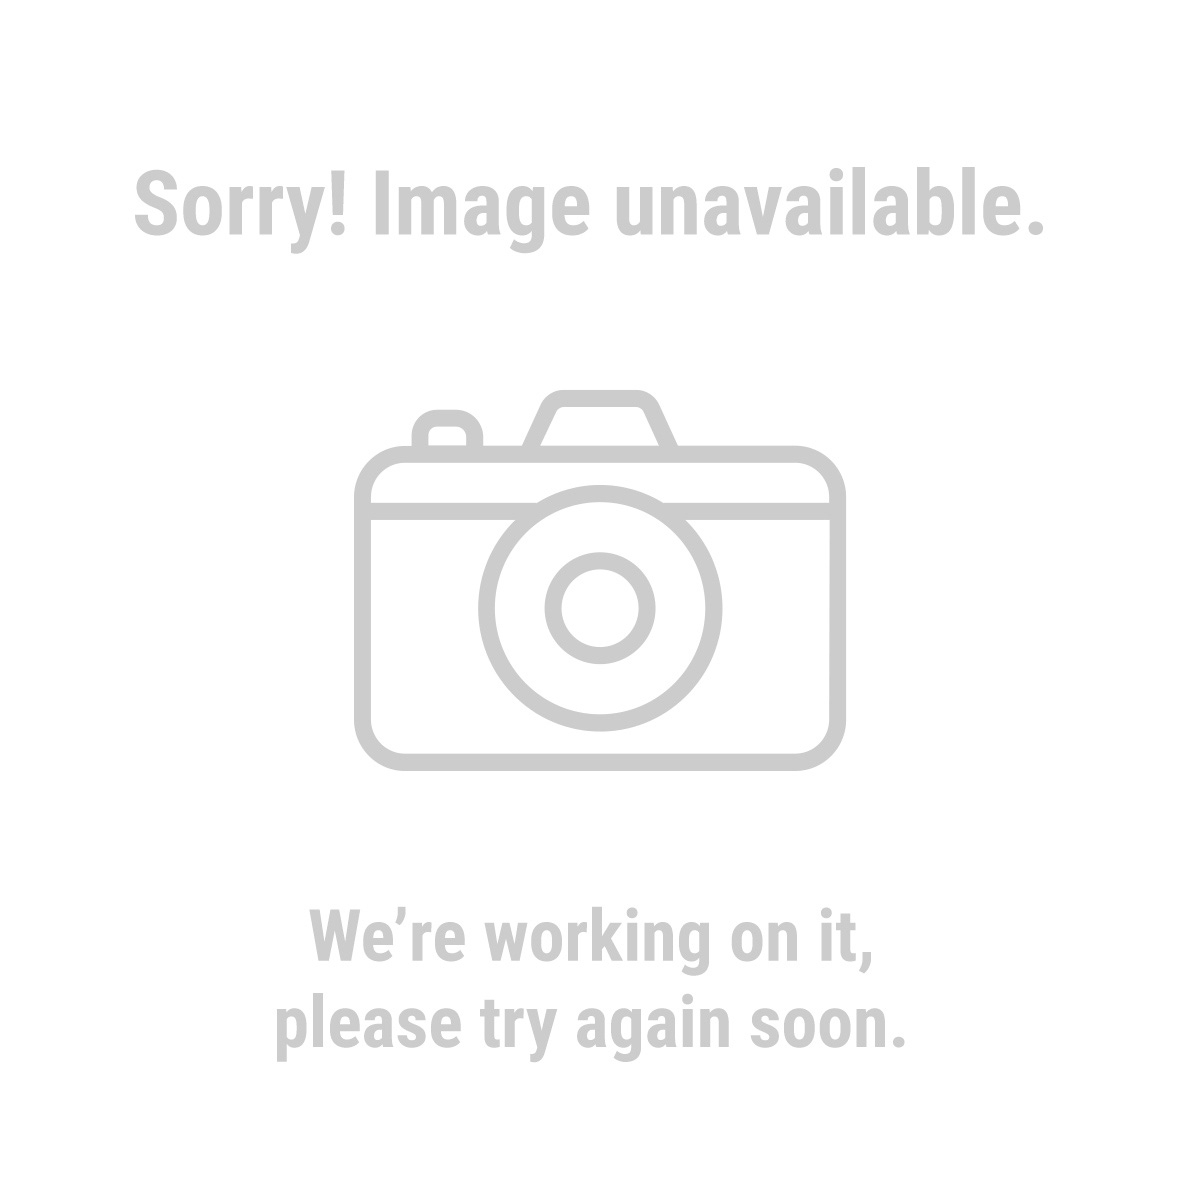 93610 6 Piece Detail Brush Set